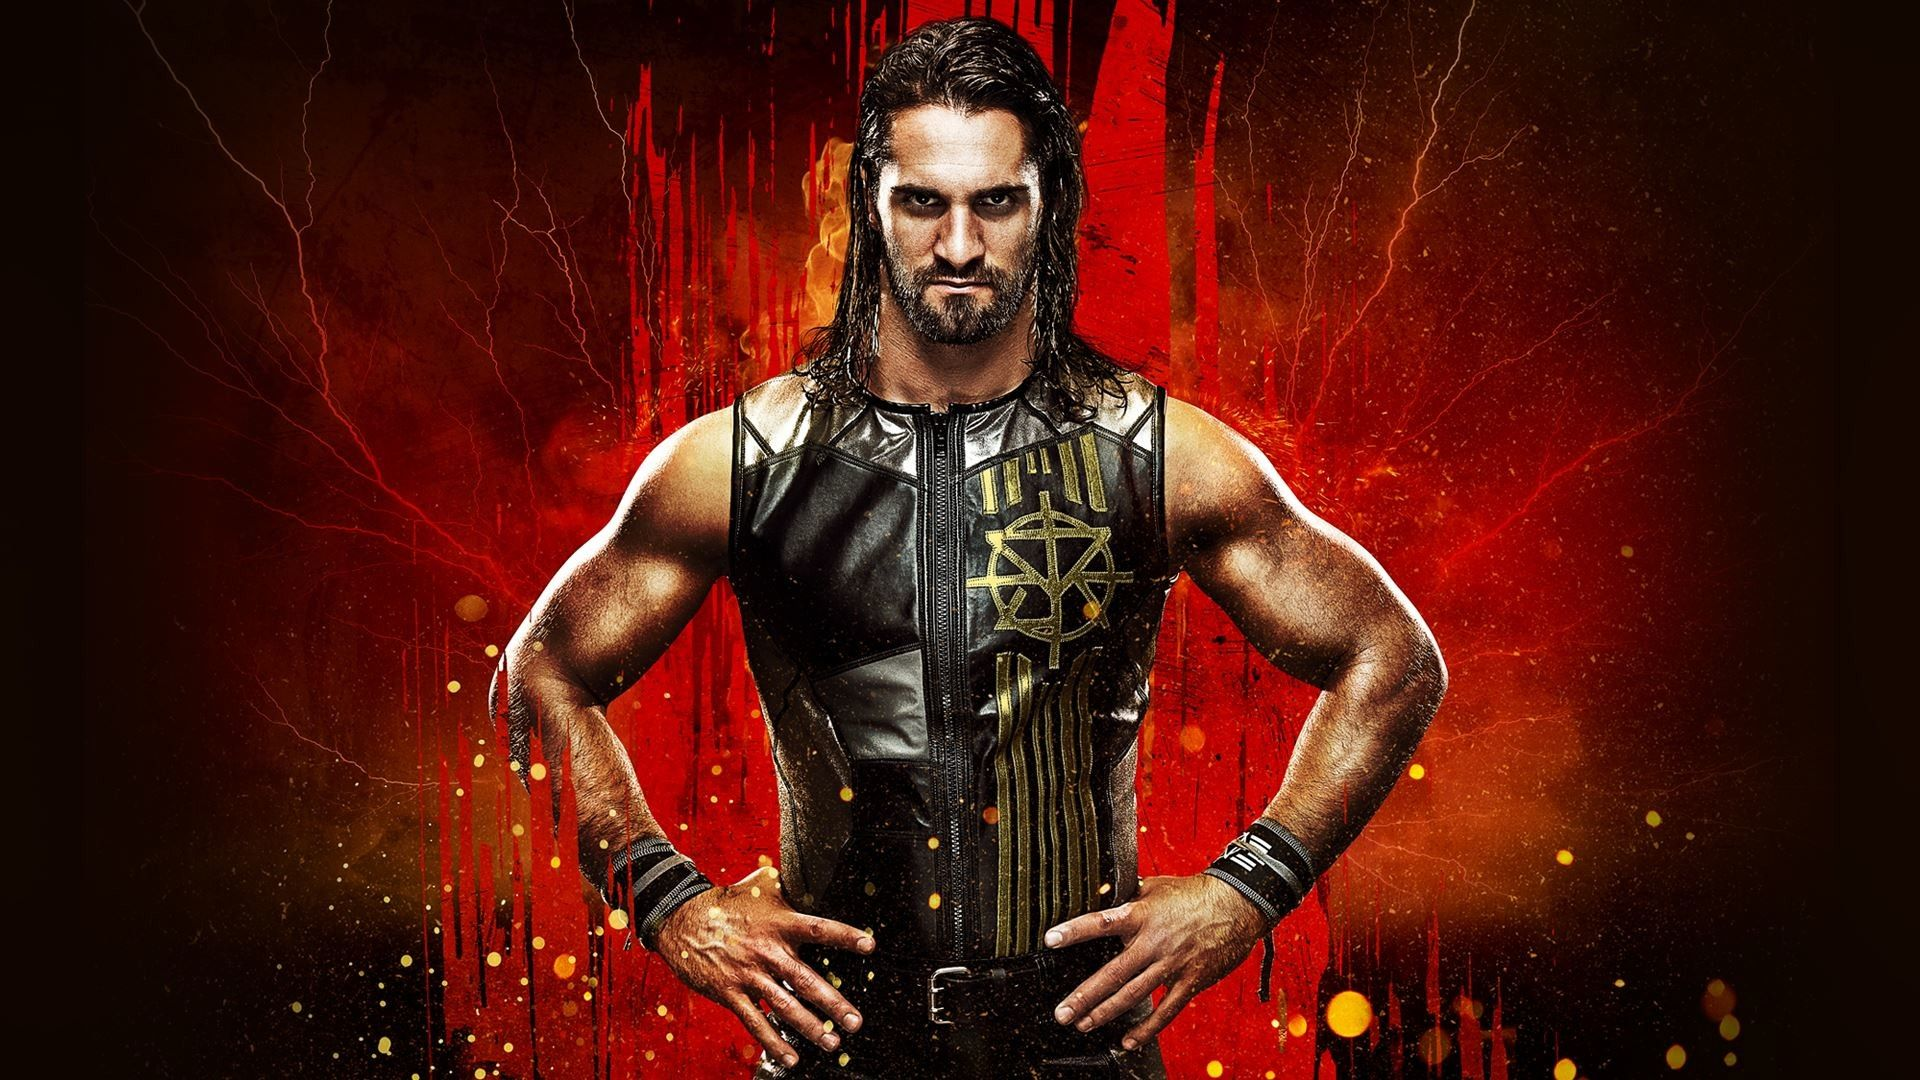 Seth Rollins Wallpapers Top Free Seth Rollins Backgrounds